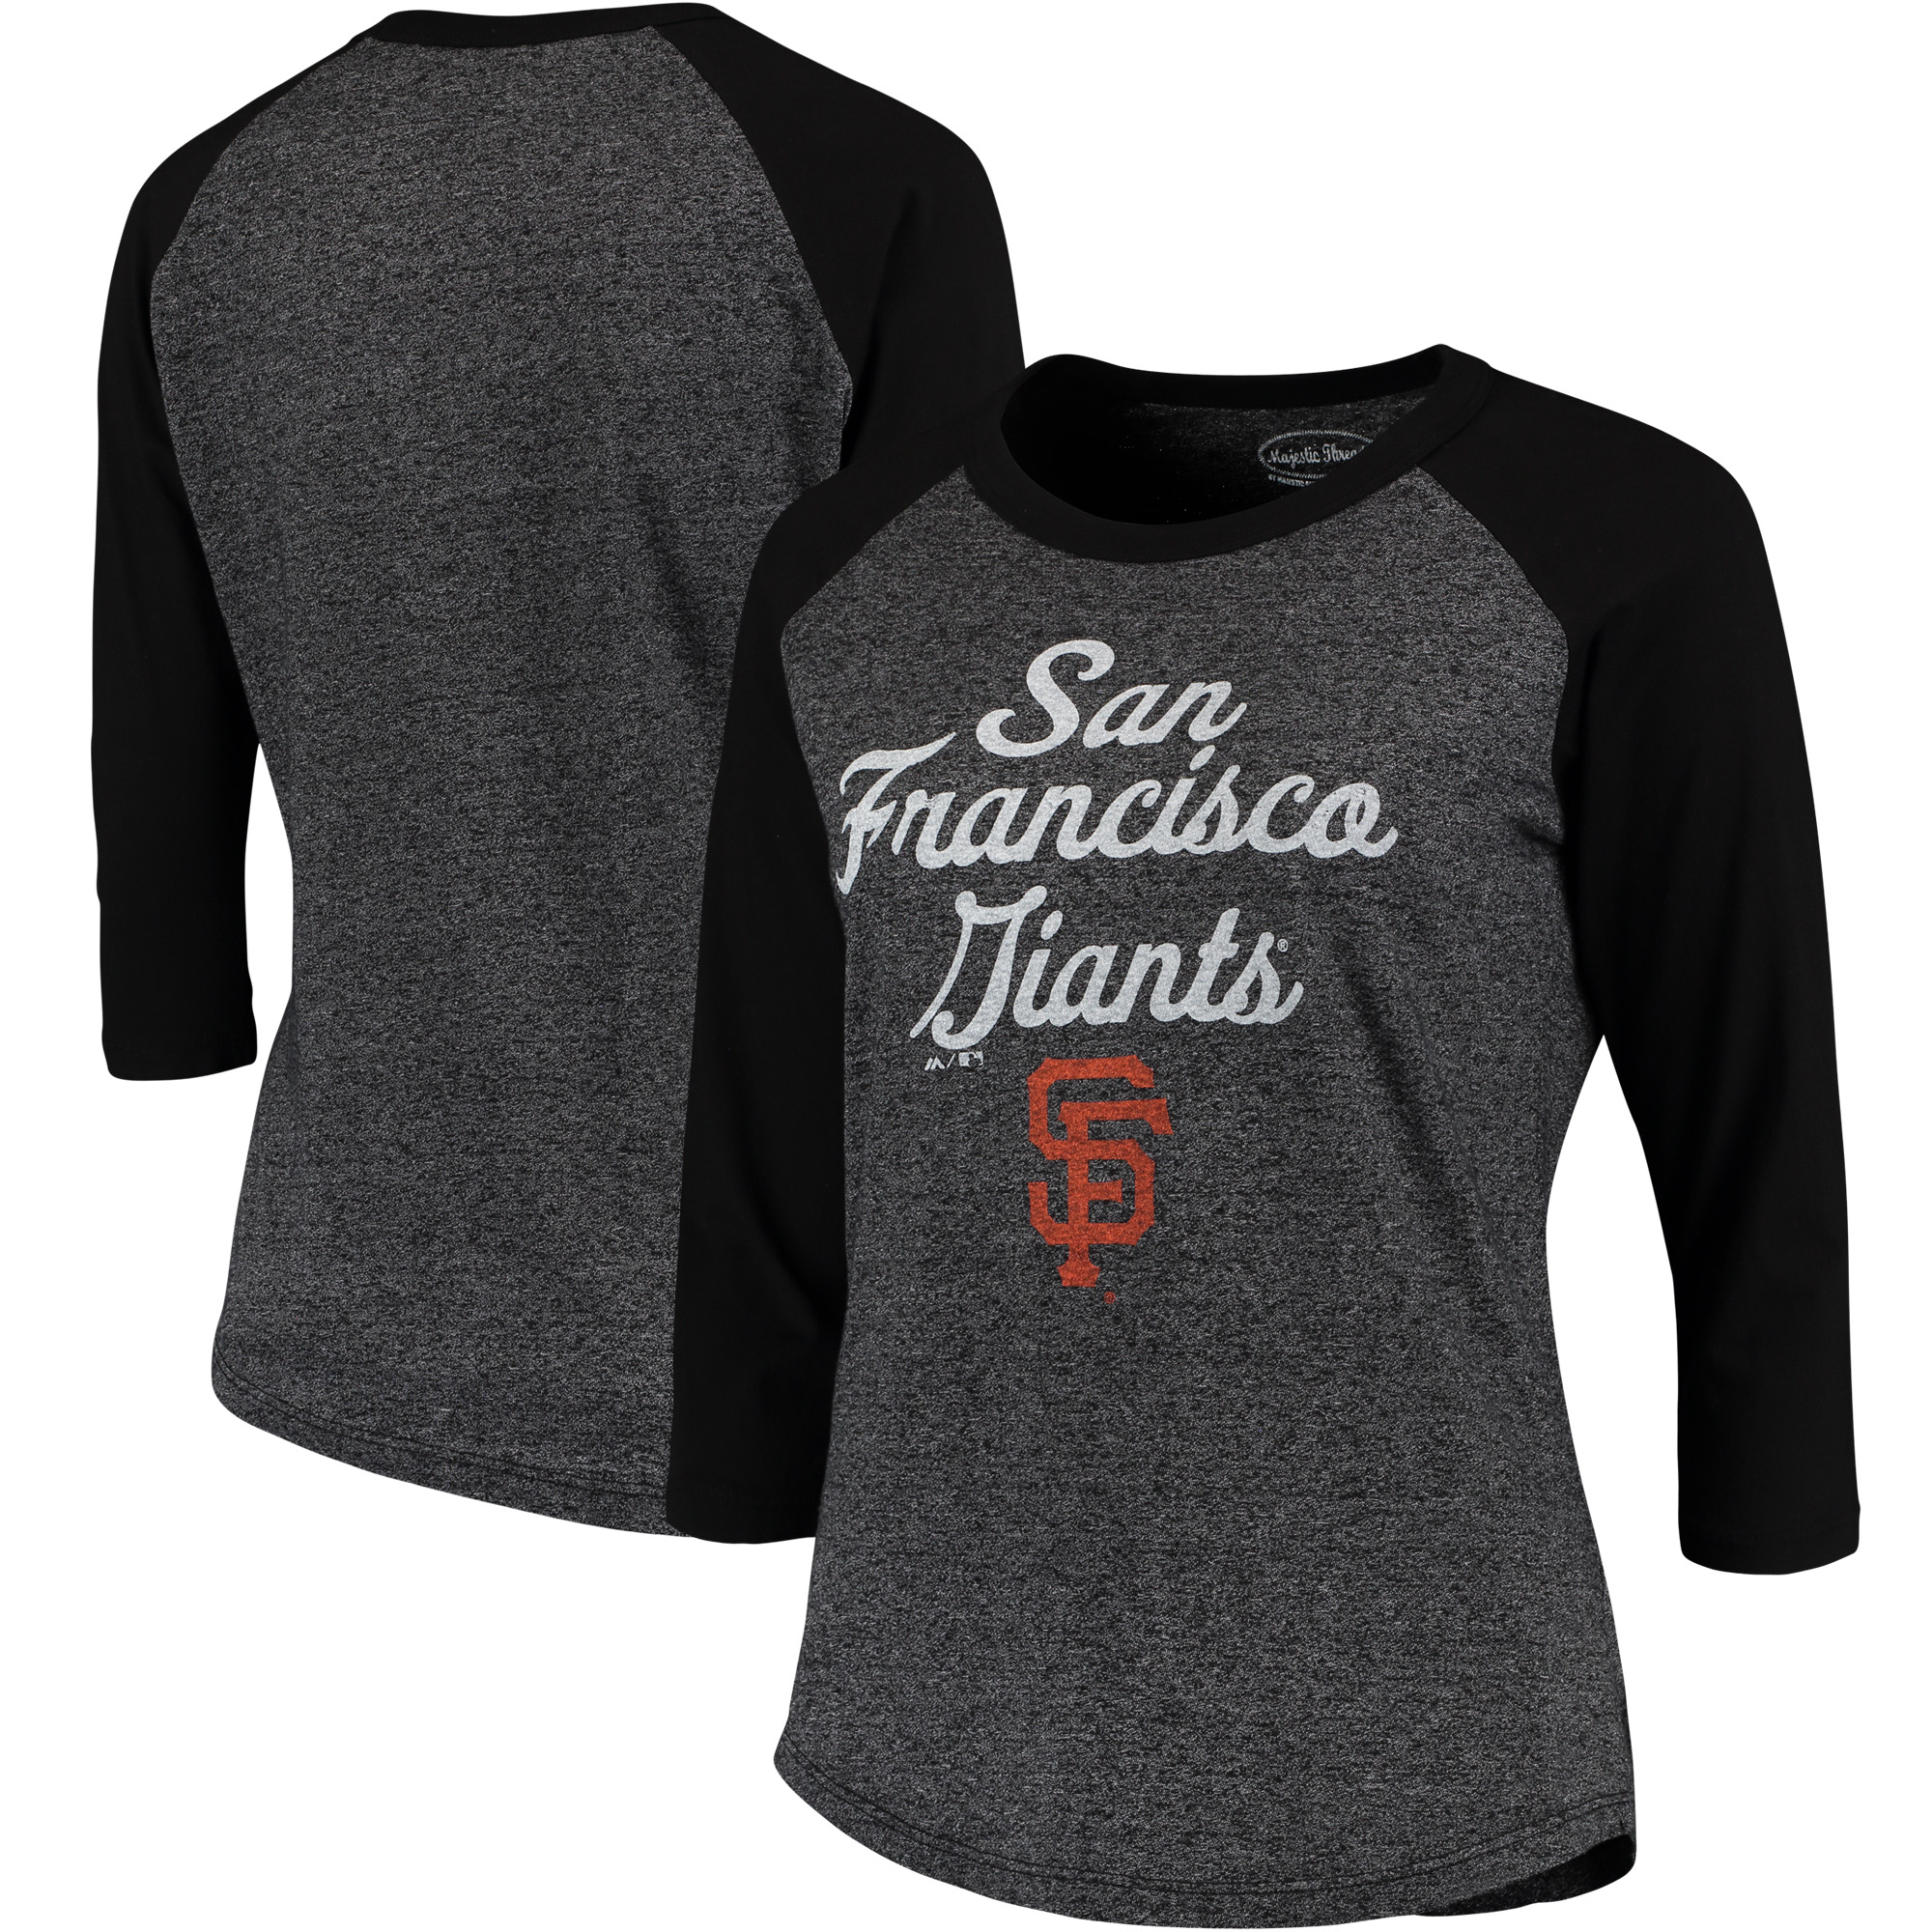 Women's Majestic Threads Black San Francisco Giants 3/4-Sleeve Raglan T-Shirt